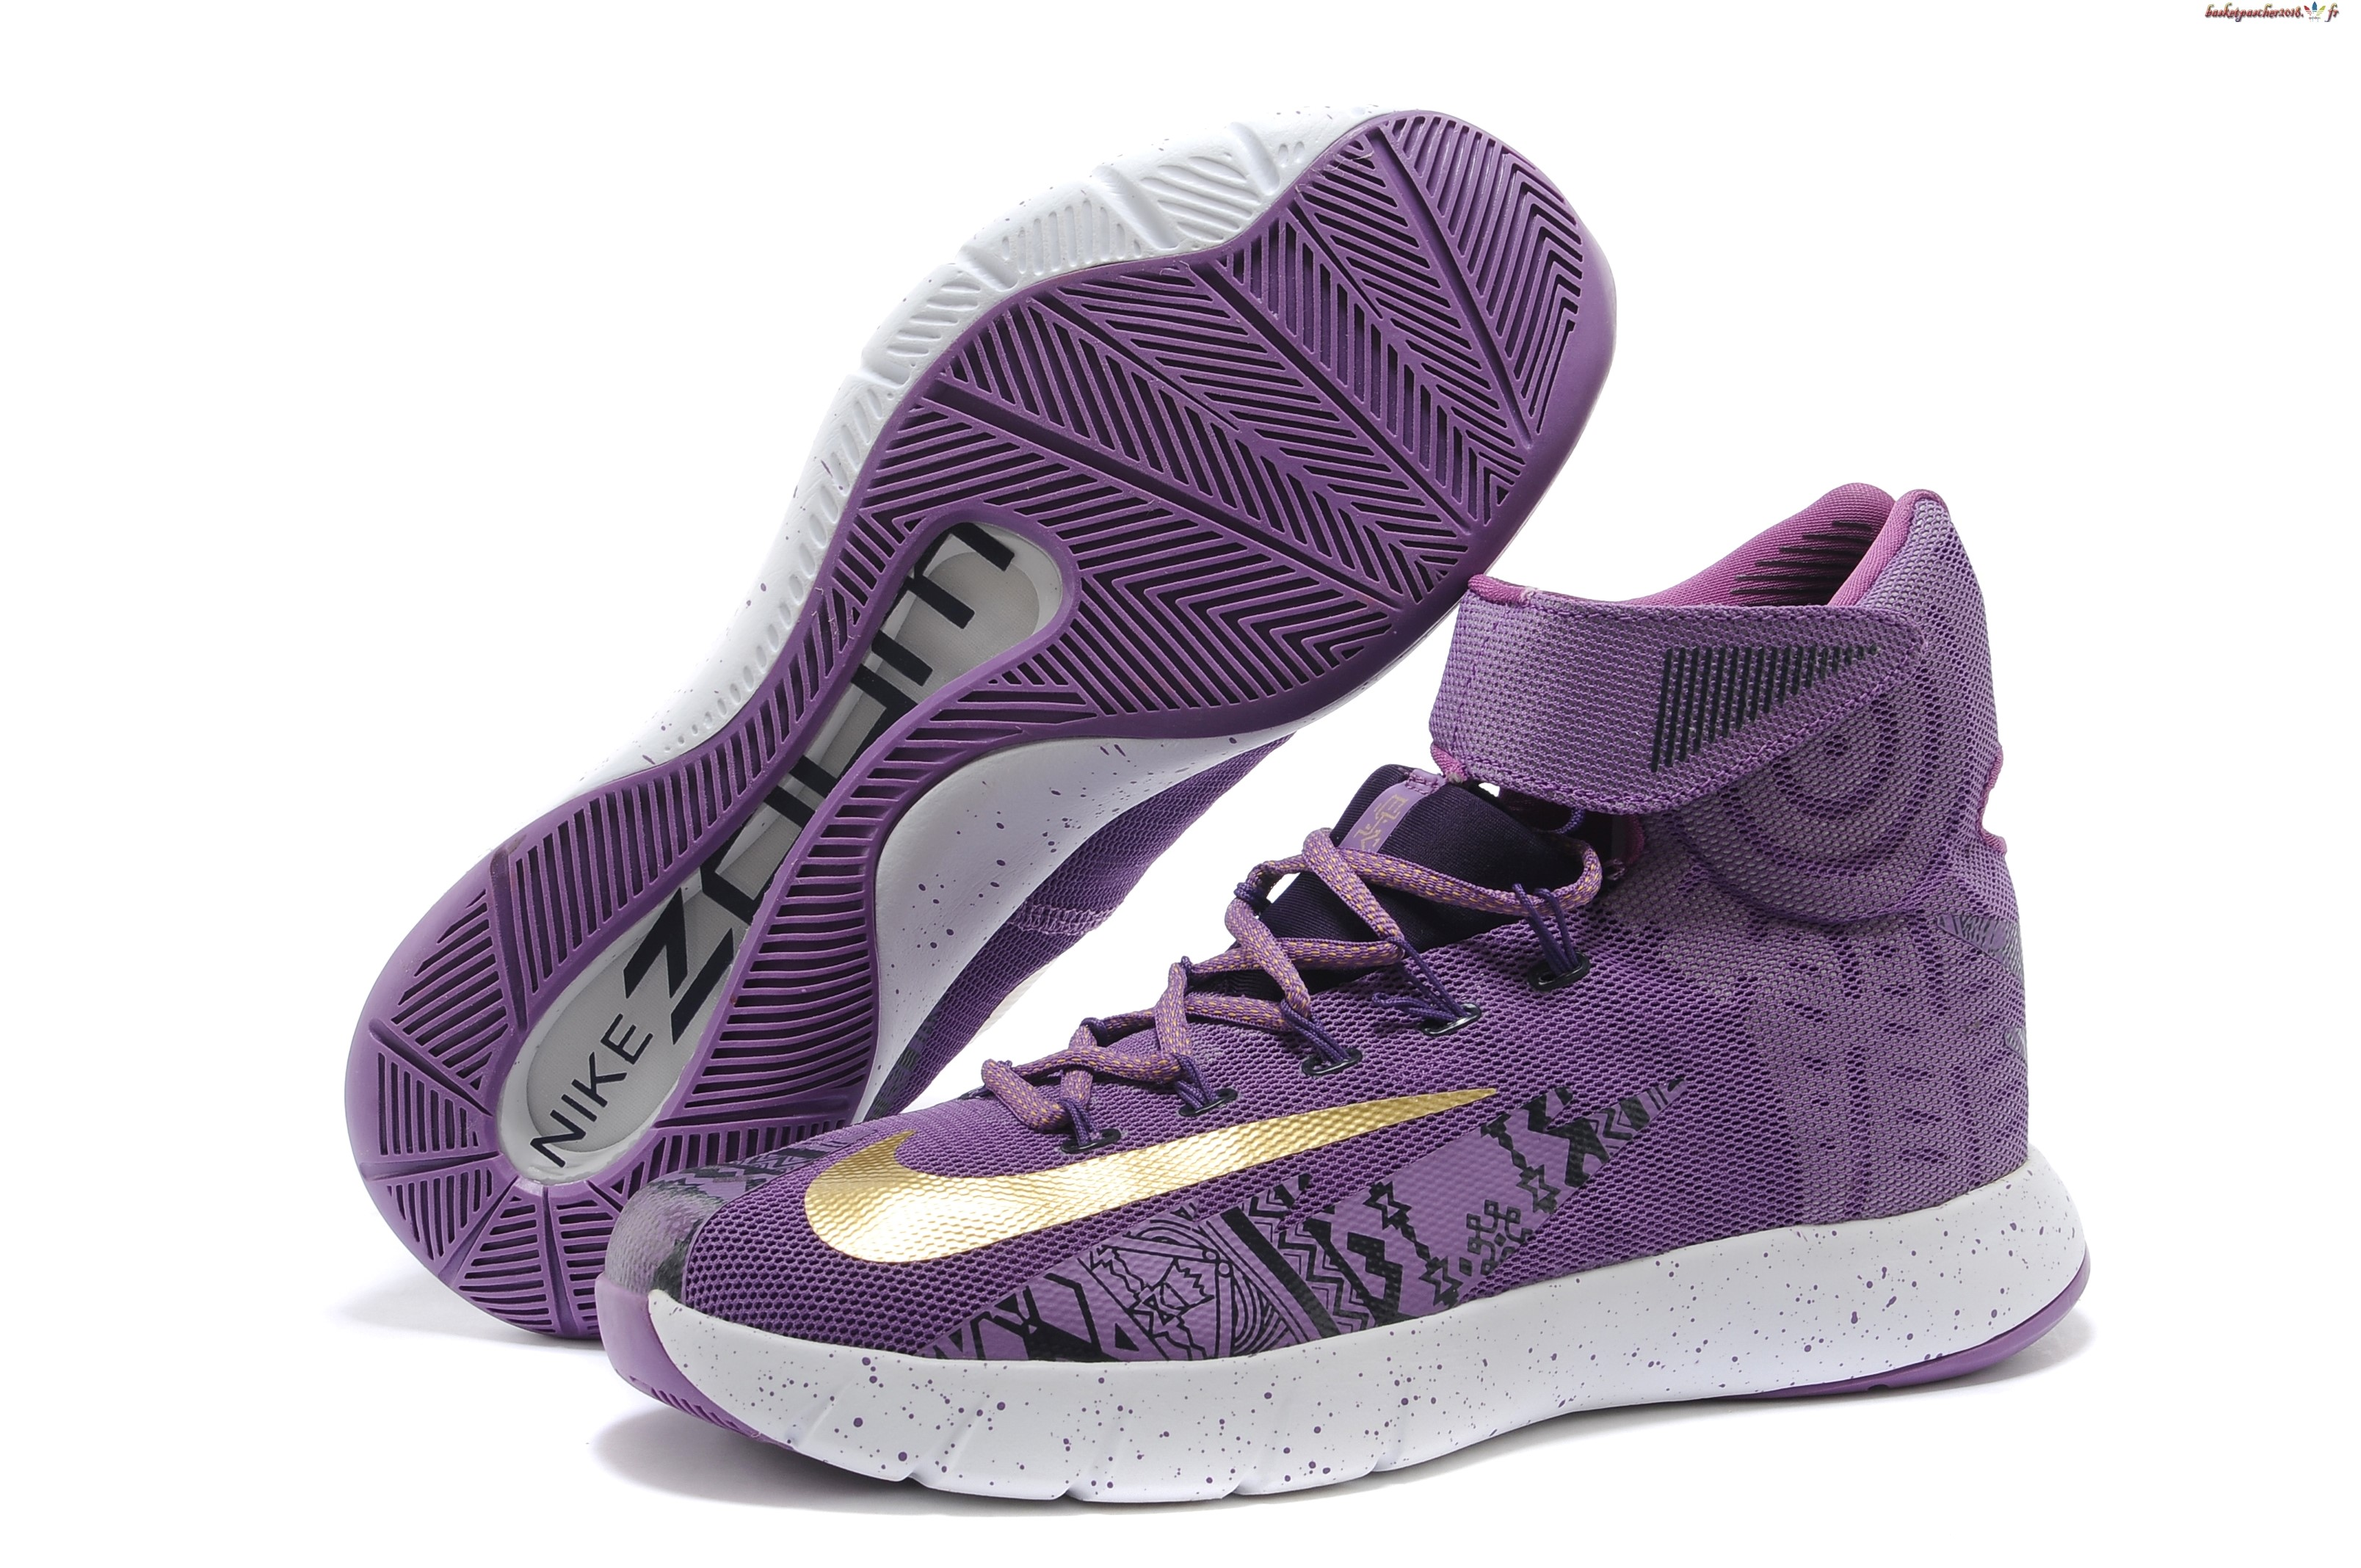 Vente Chaude Chaussures De Basketball Homme Nike Zoom Hyperrev Kyrie Irving Pourpre Pas Cher